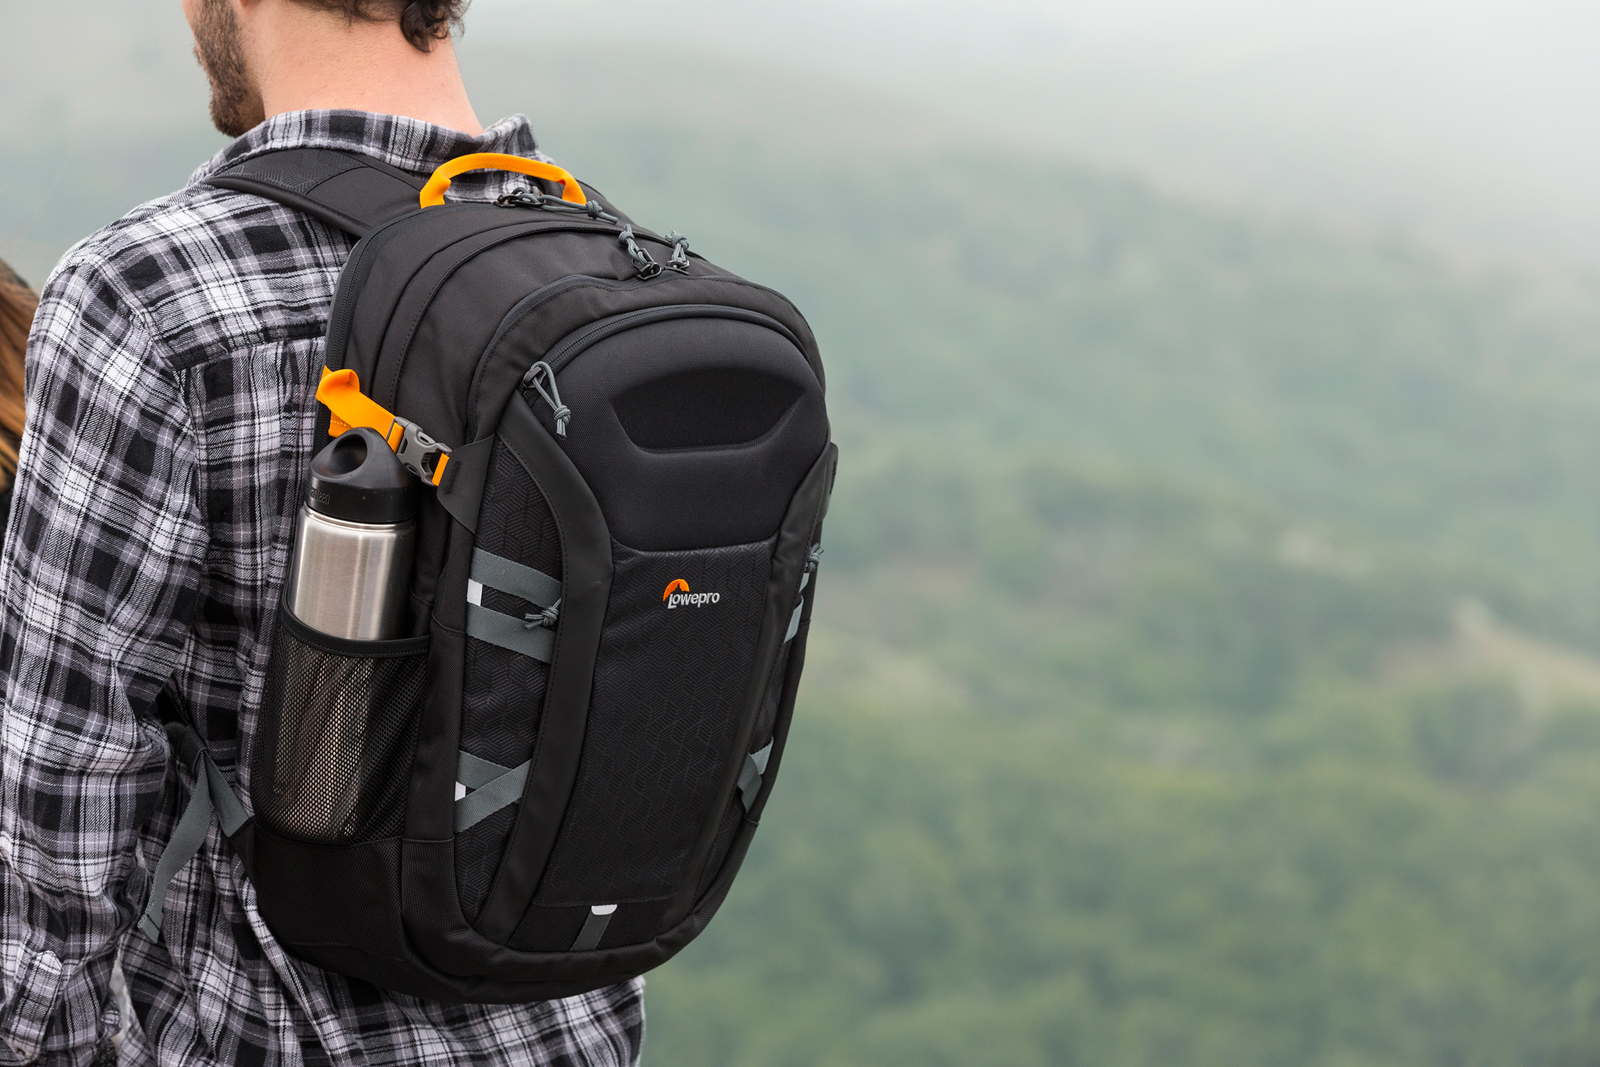 Free Bag Friday – RidgeLine Pro BP 300 AW